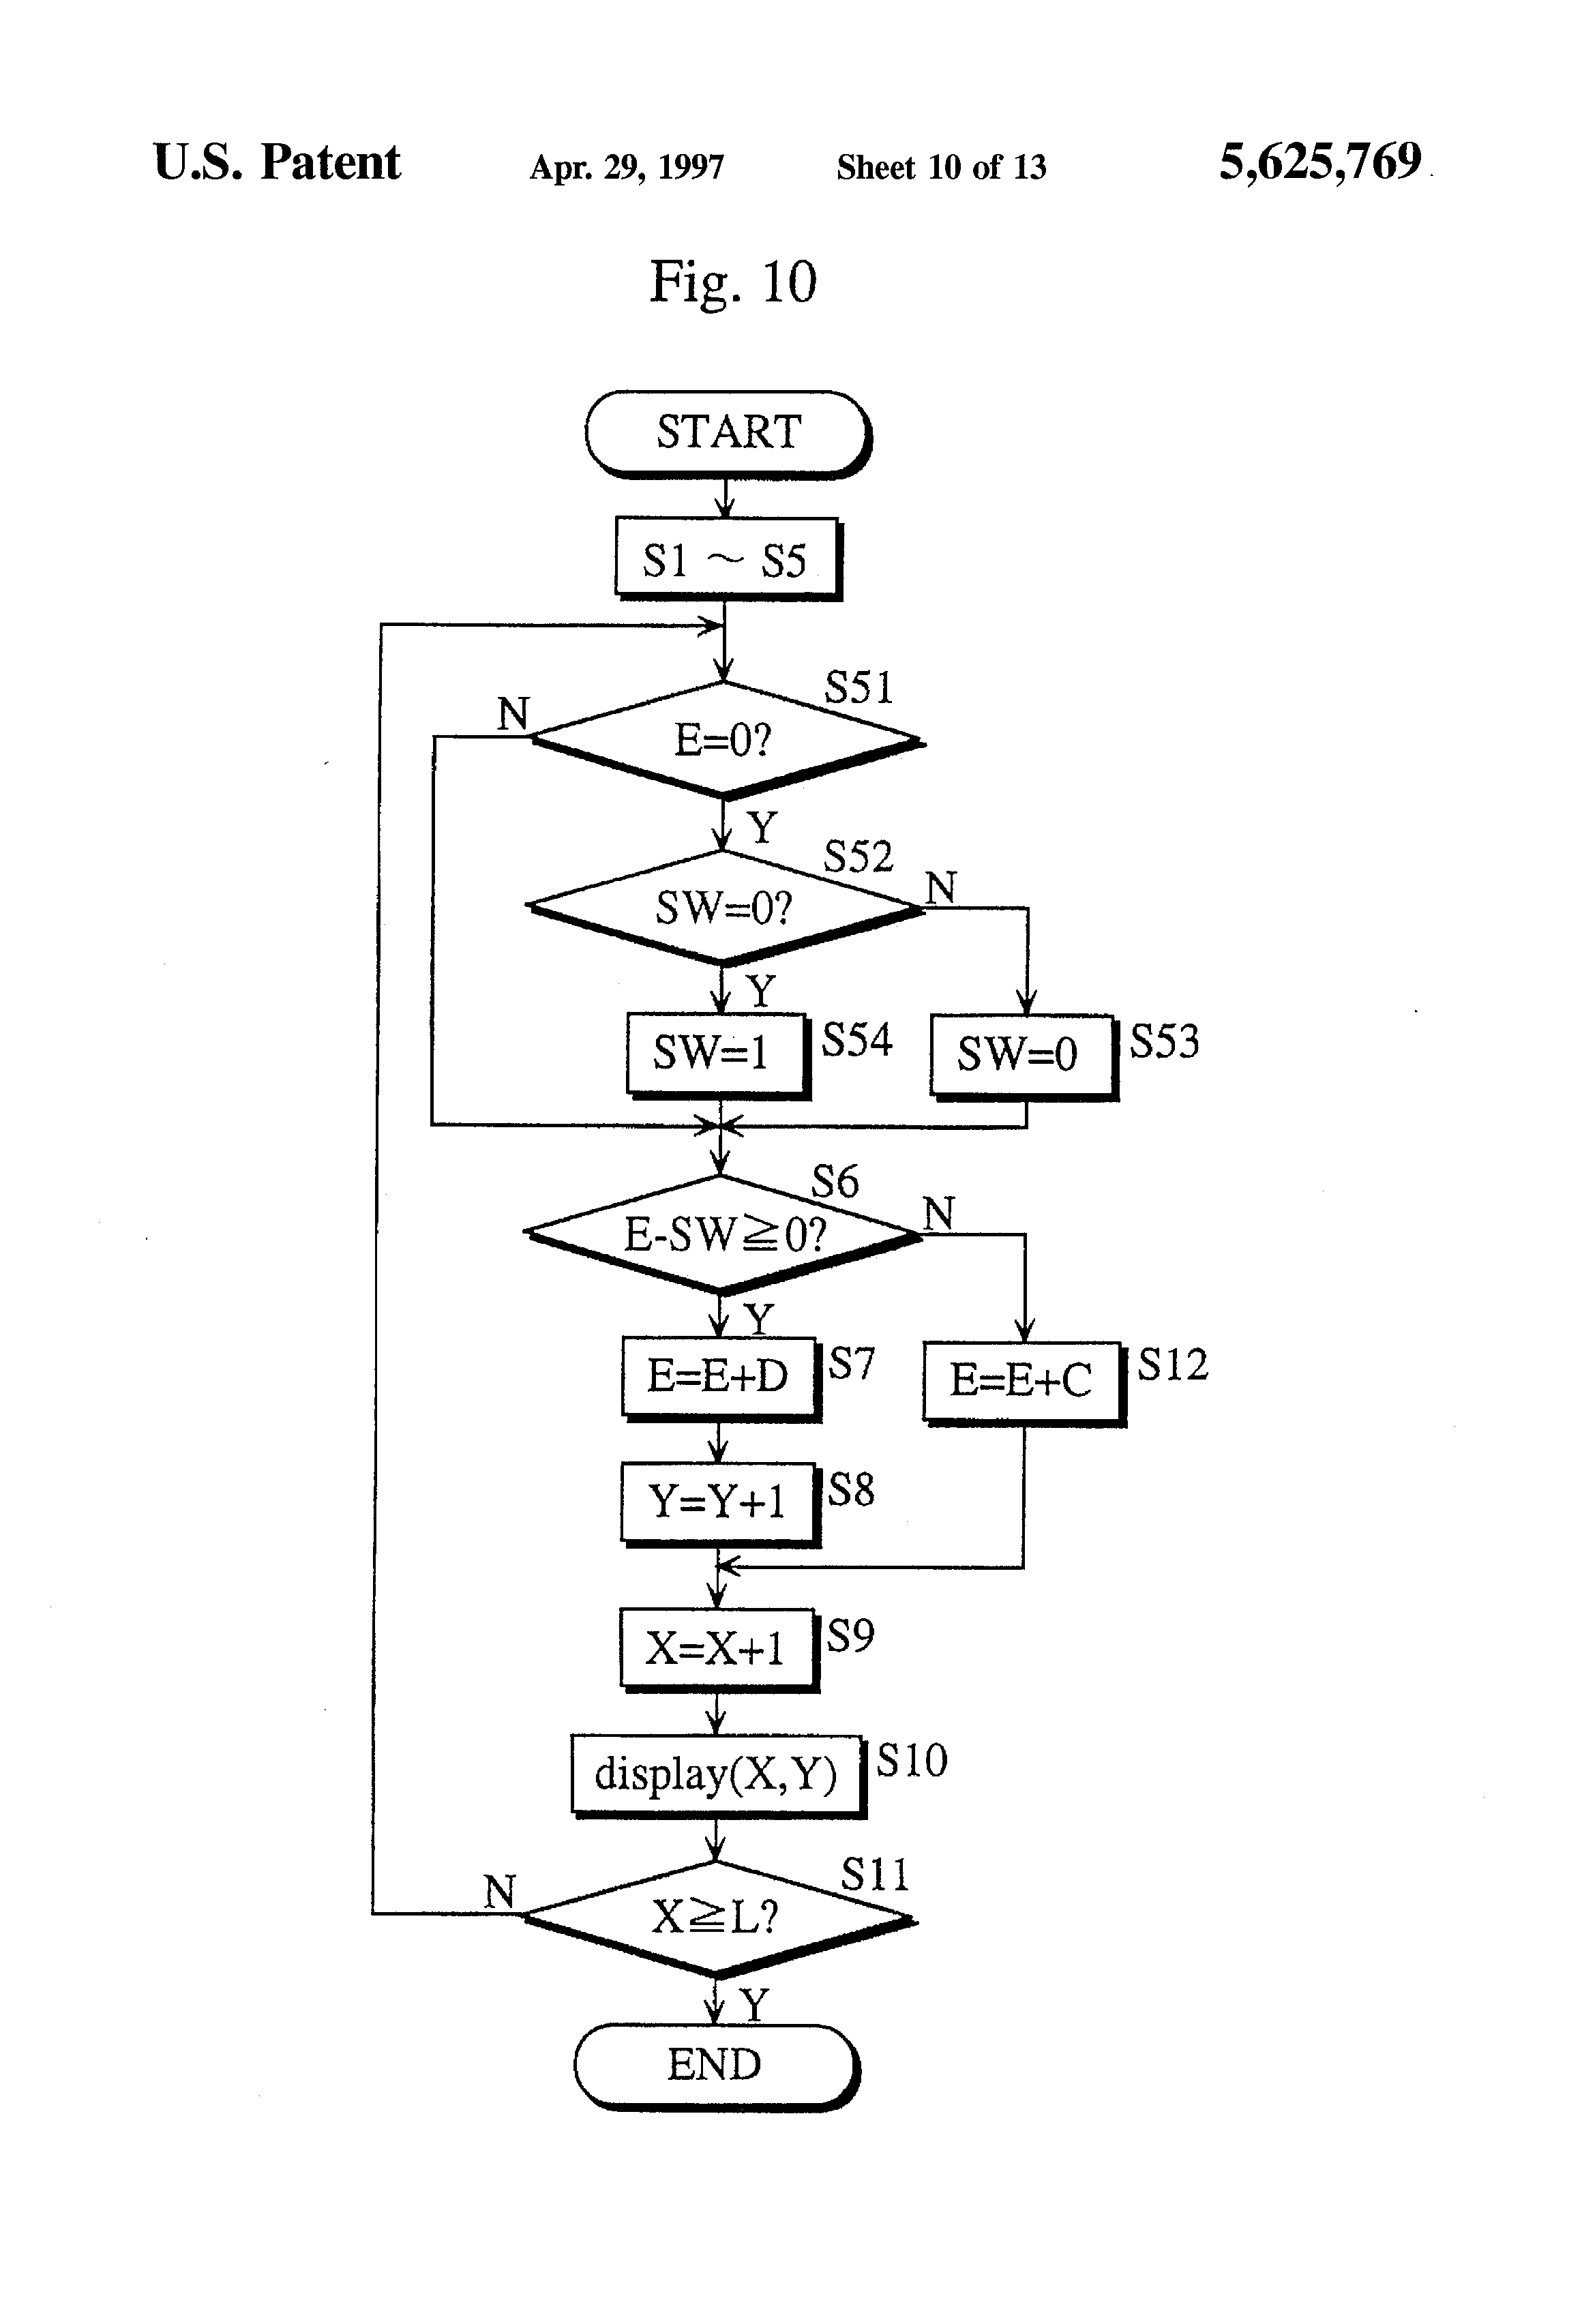 Dda Line Drawing Algorithm Flowchart Pdf : Patent us apparatus for and method of generating